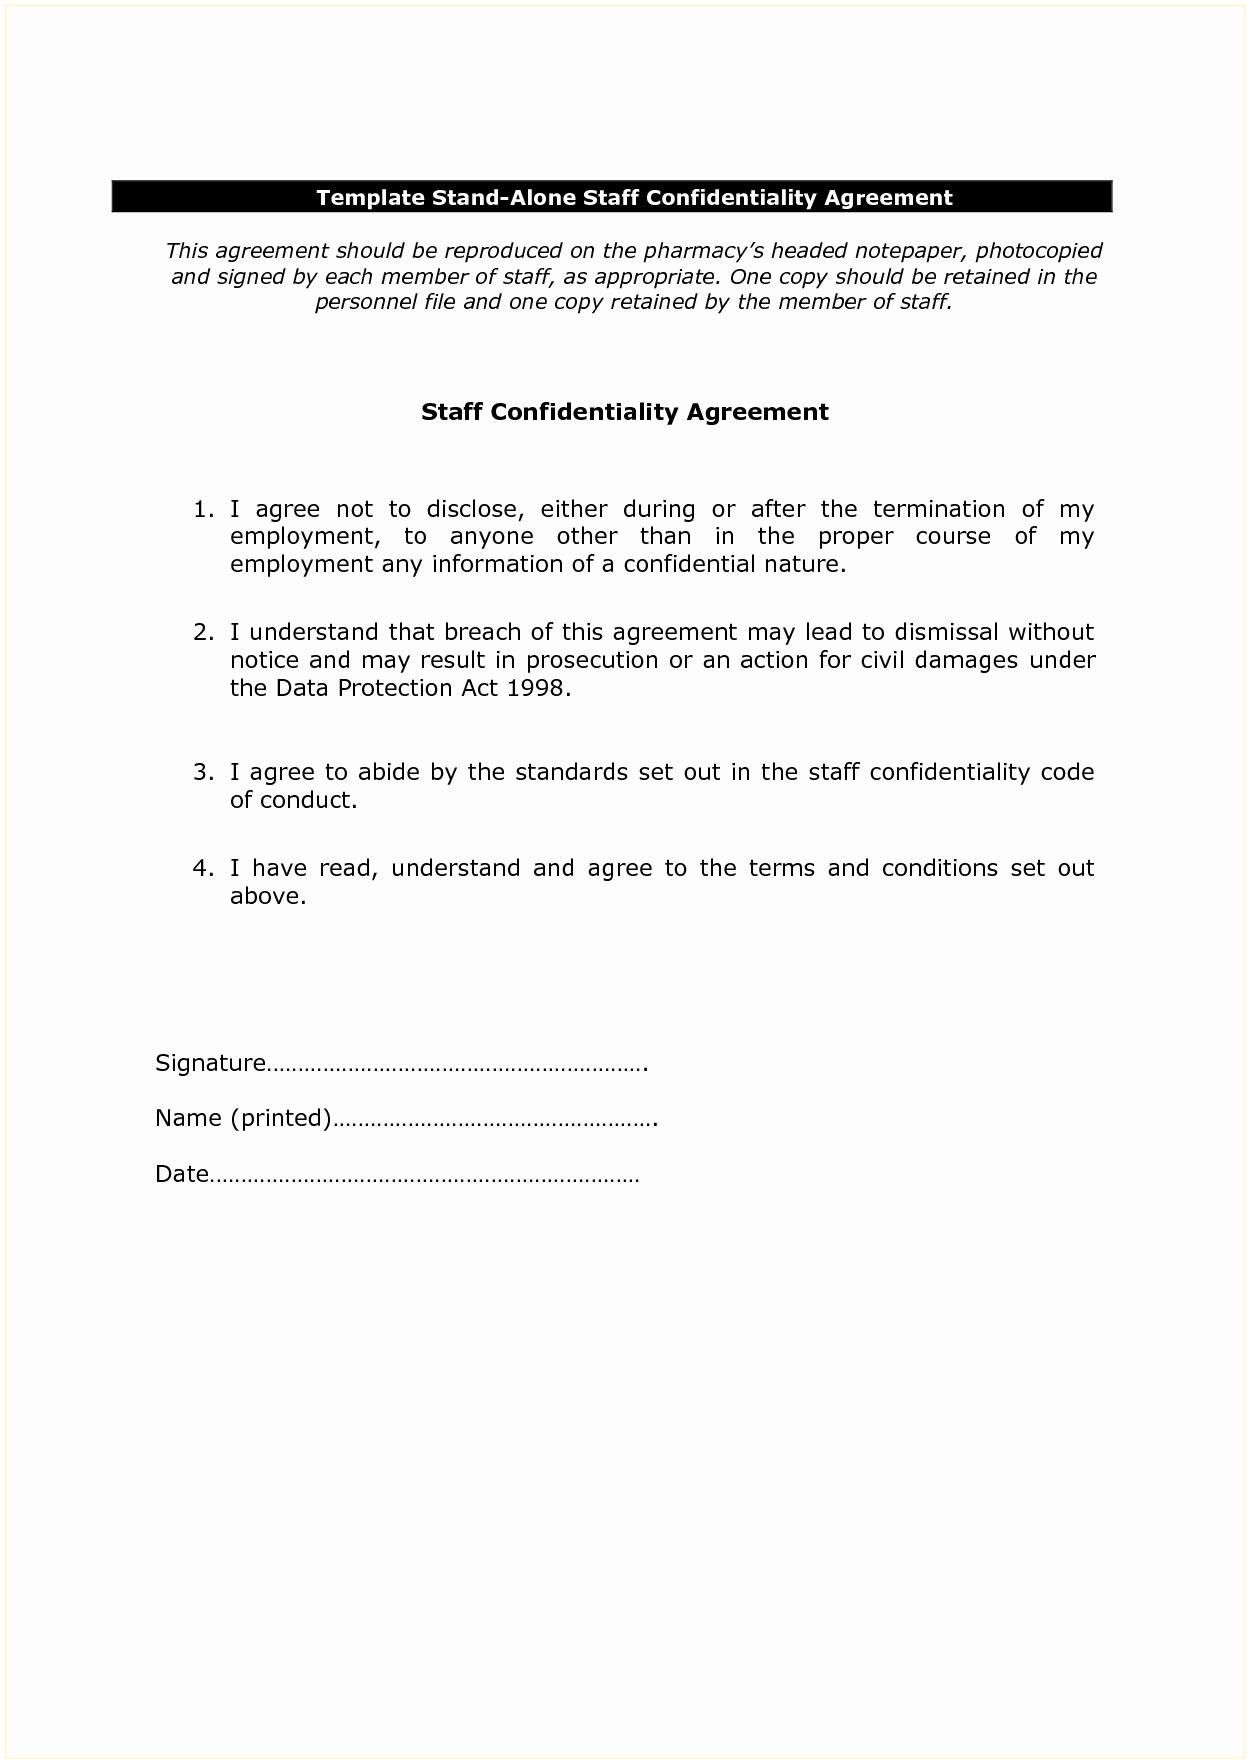 Confidentiality Agreement Template California